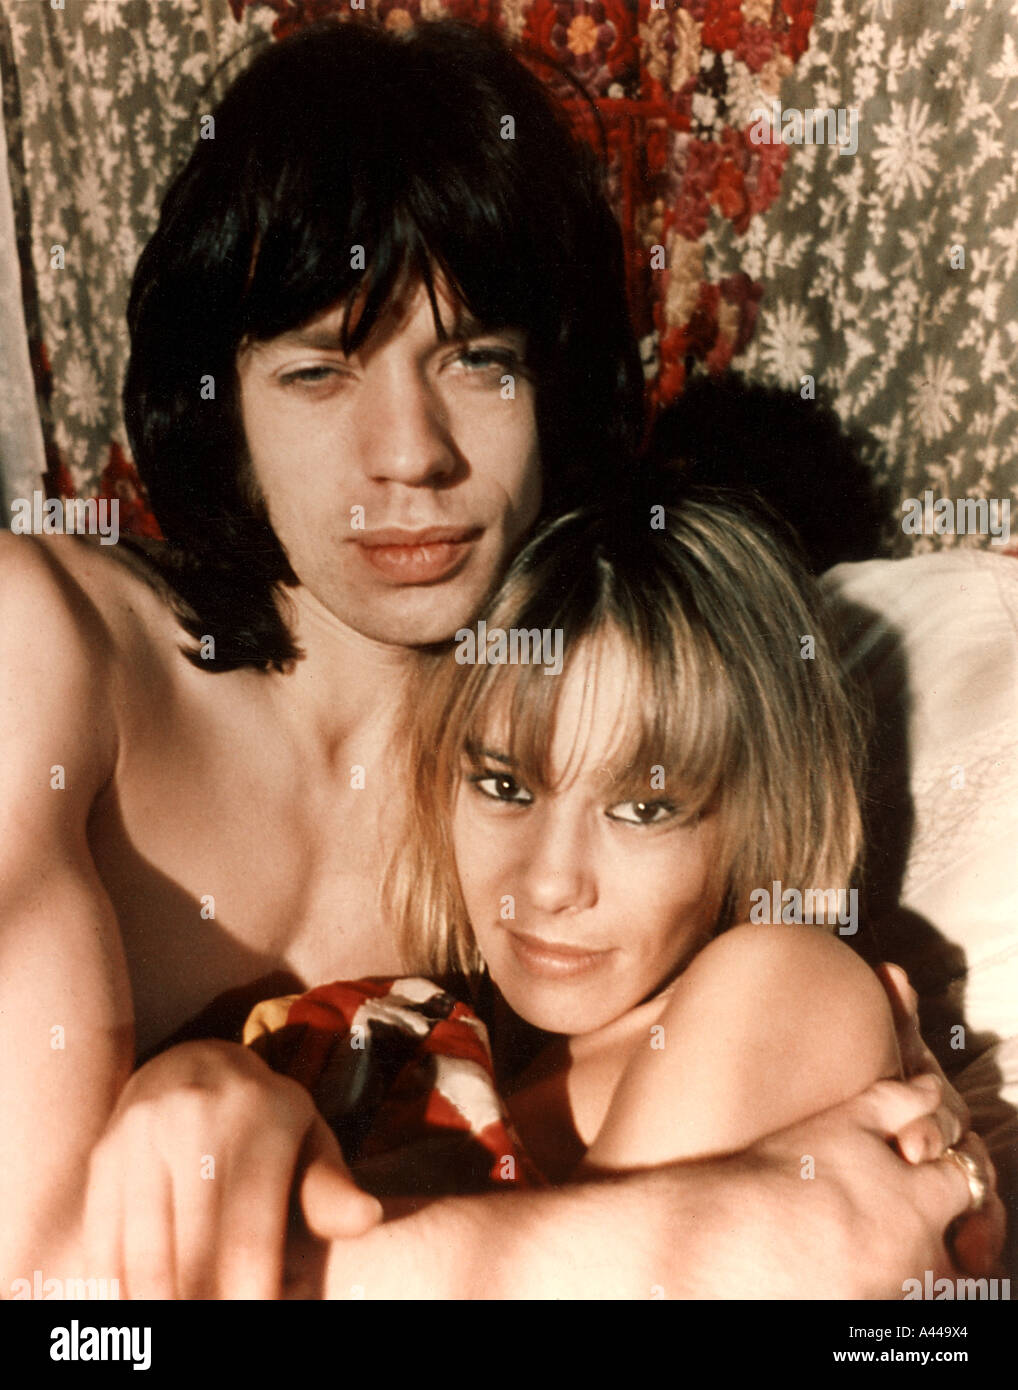 PERFORMANCE Mick Jagger and Anita Pallenberg in the 1970 Warner film - Stock Image